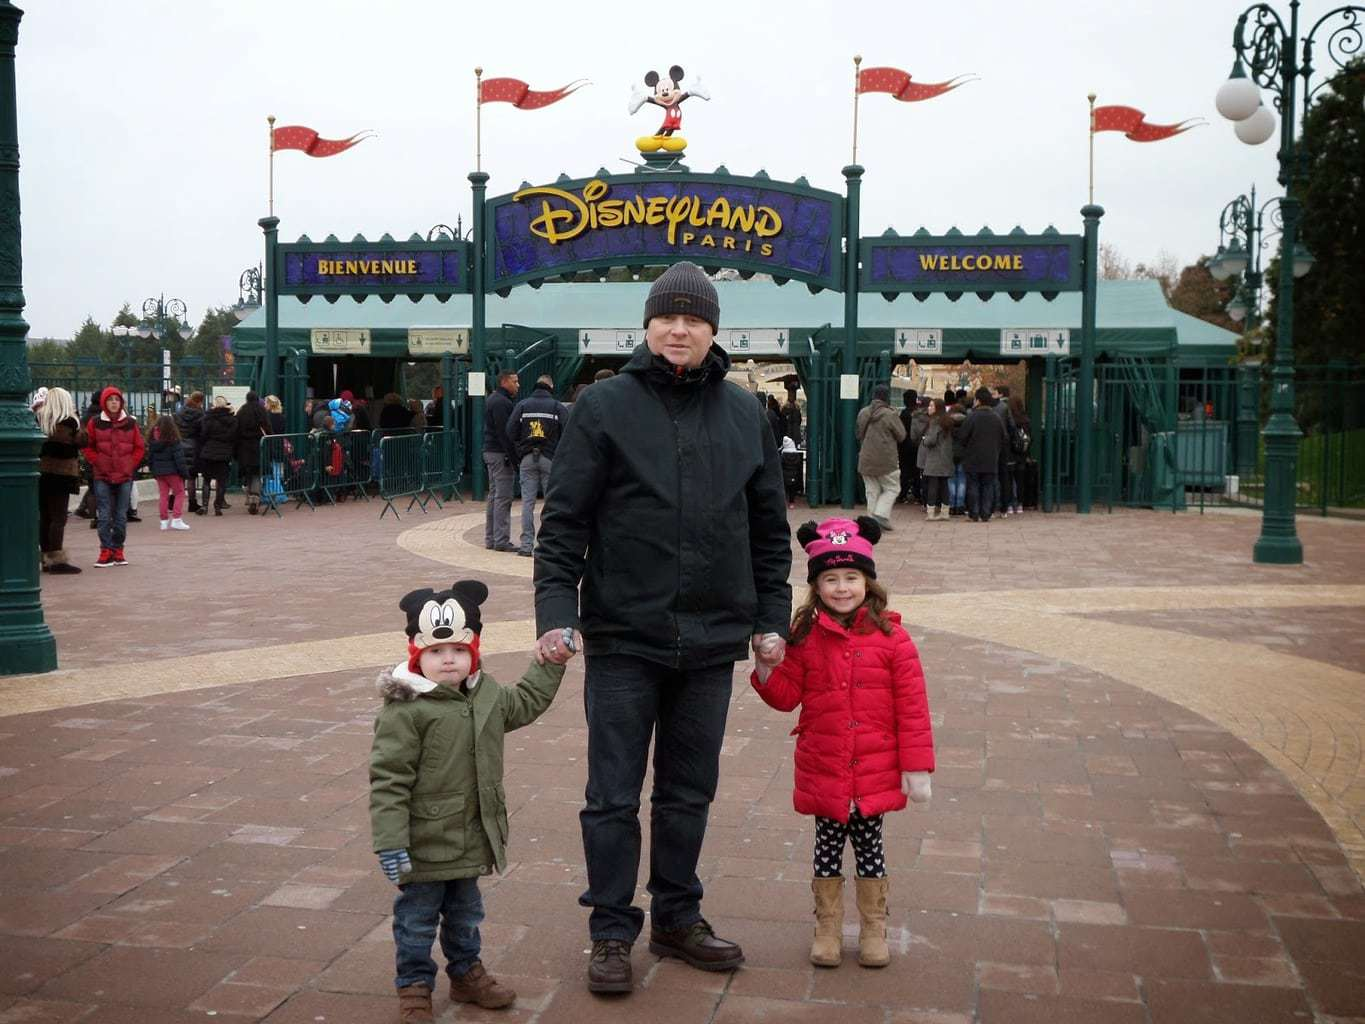 This review about Hotel Cheyenne and Disneyland Paris is by Mammy ...